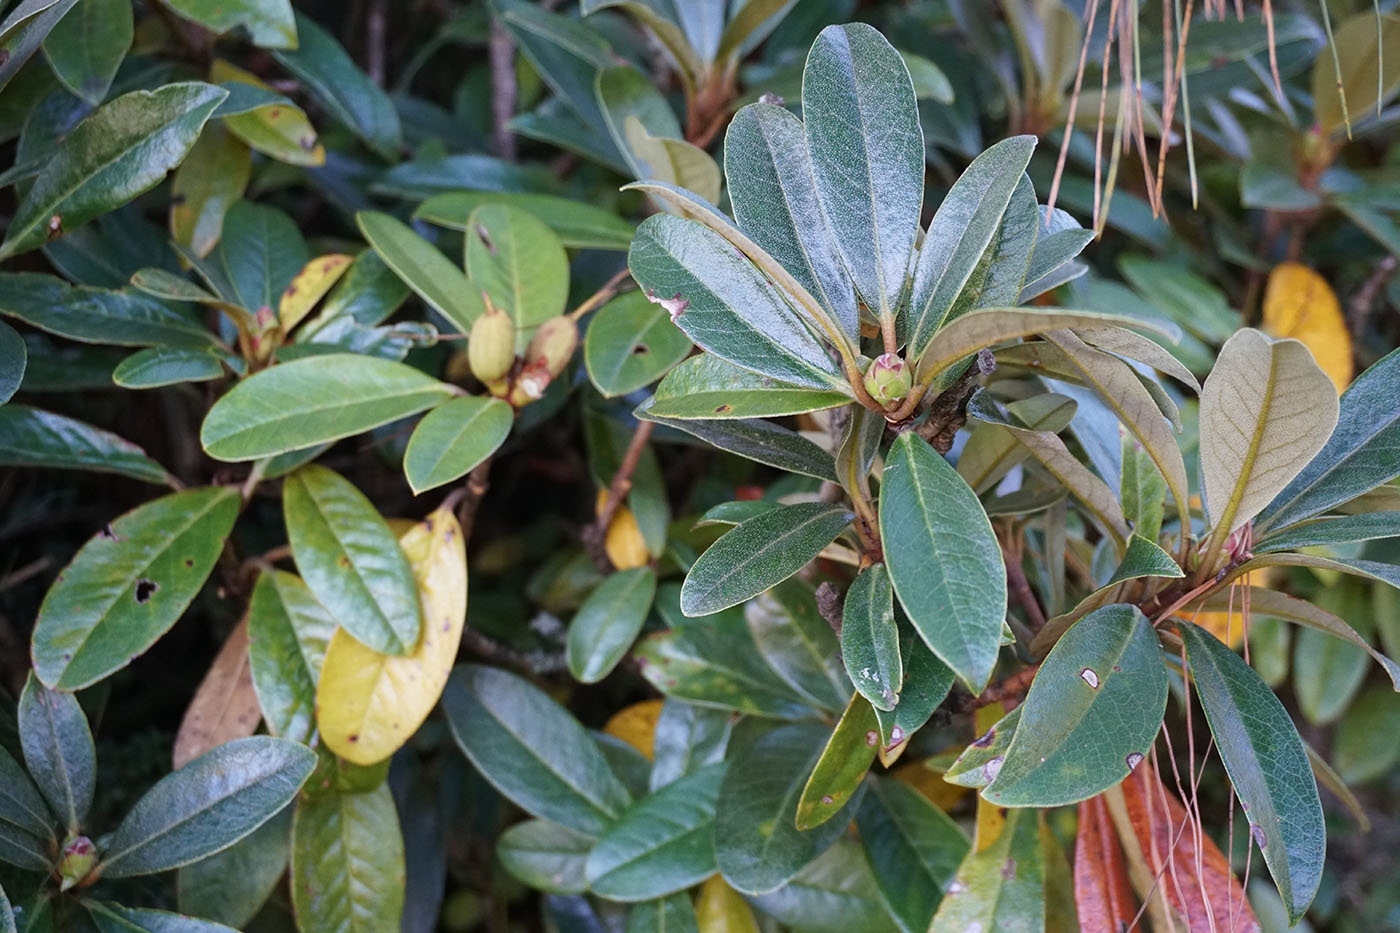 Rhododendron sp. - W/O-9286 - 30% off!